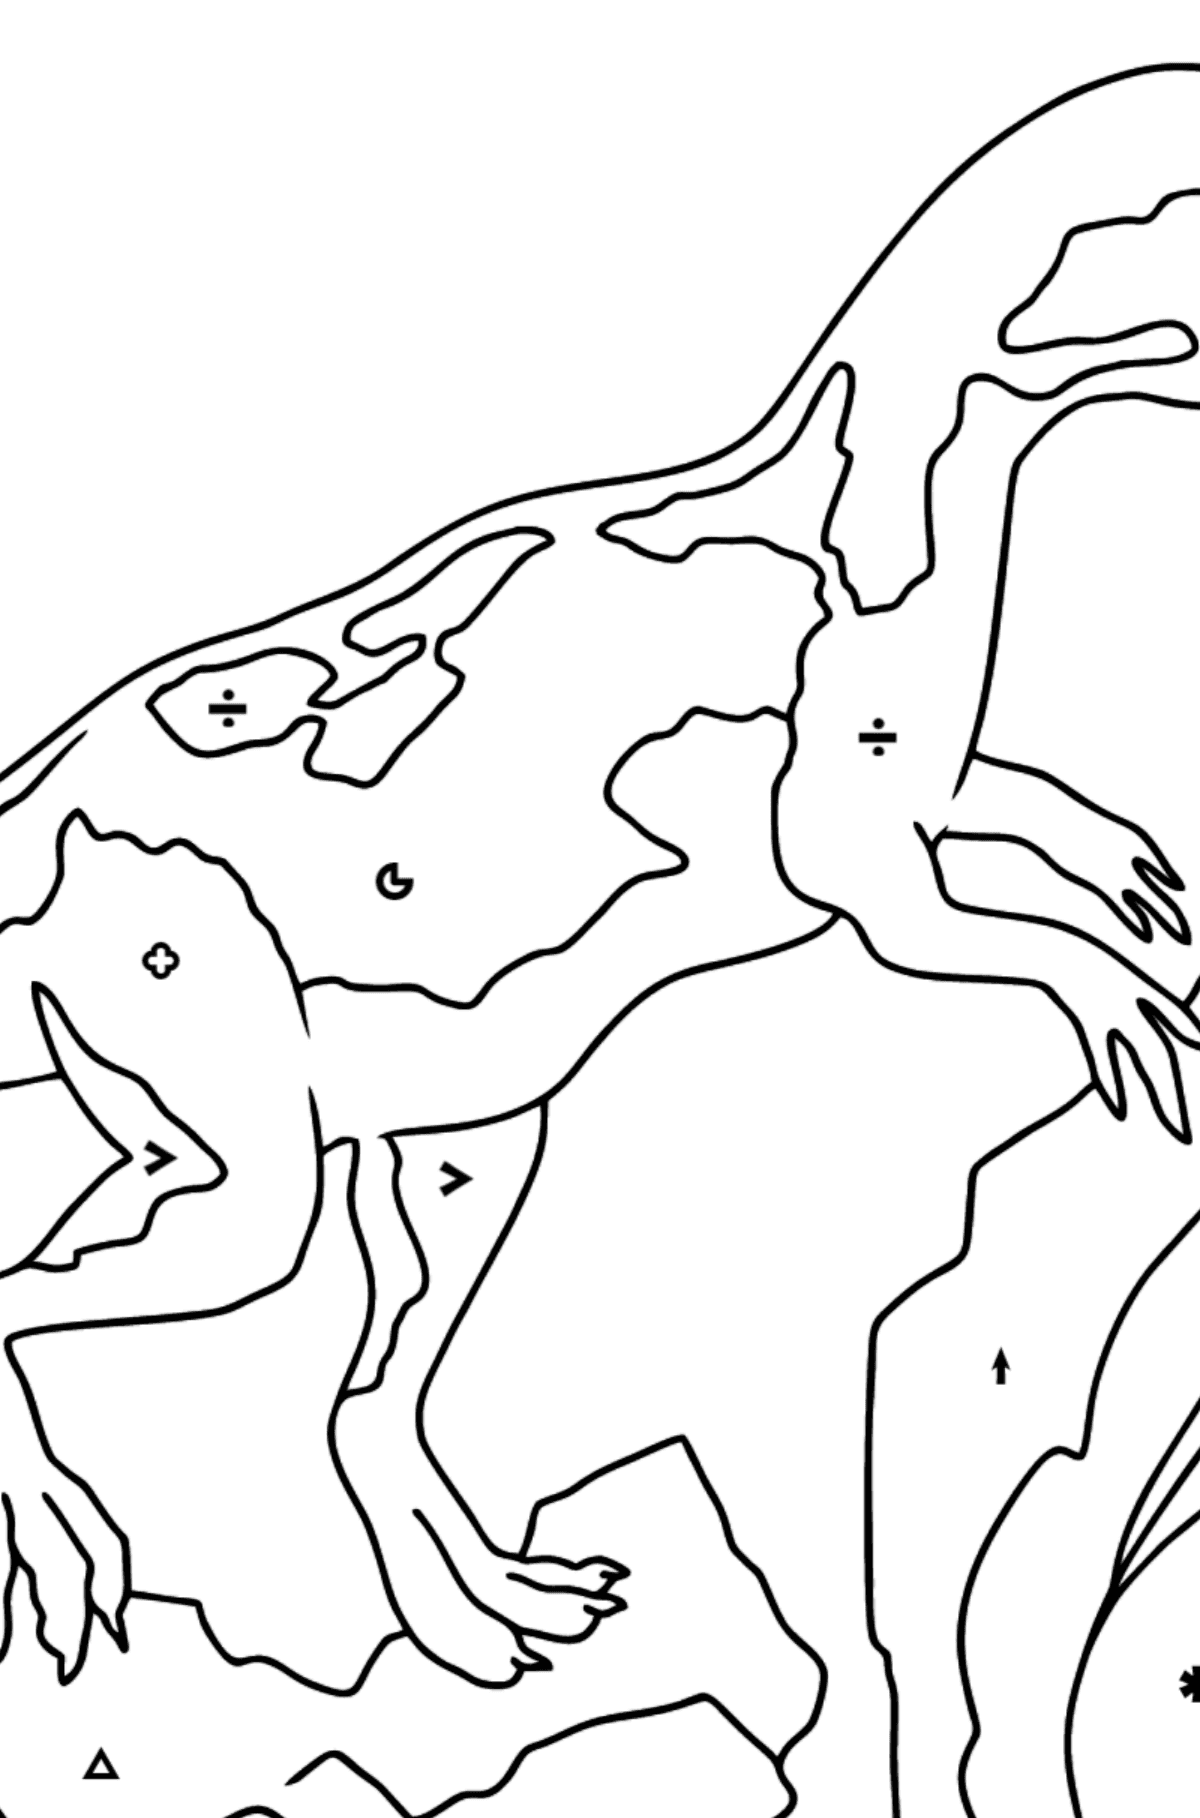 Coloring Page - Allosaurus - Jurassic Dinosaur - Coloring by Symbols and Geometric Shapes for Kids